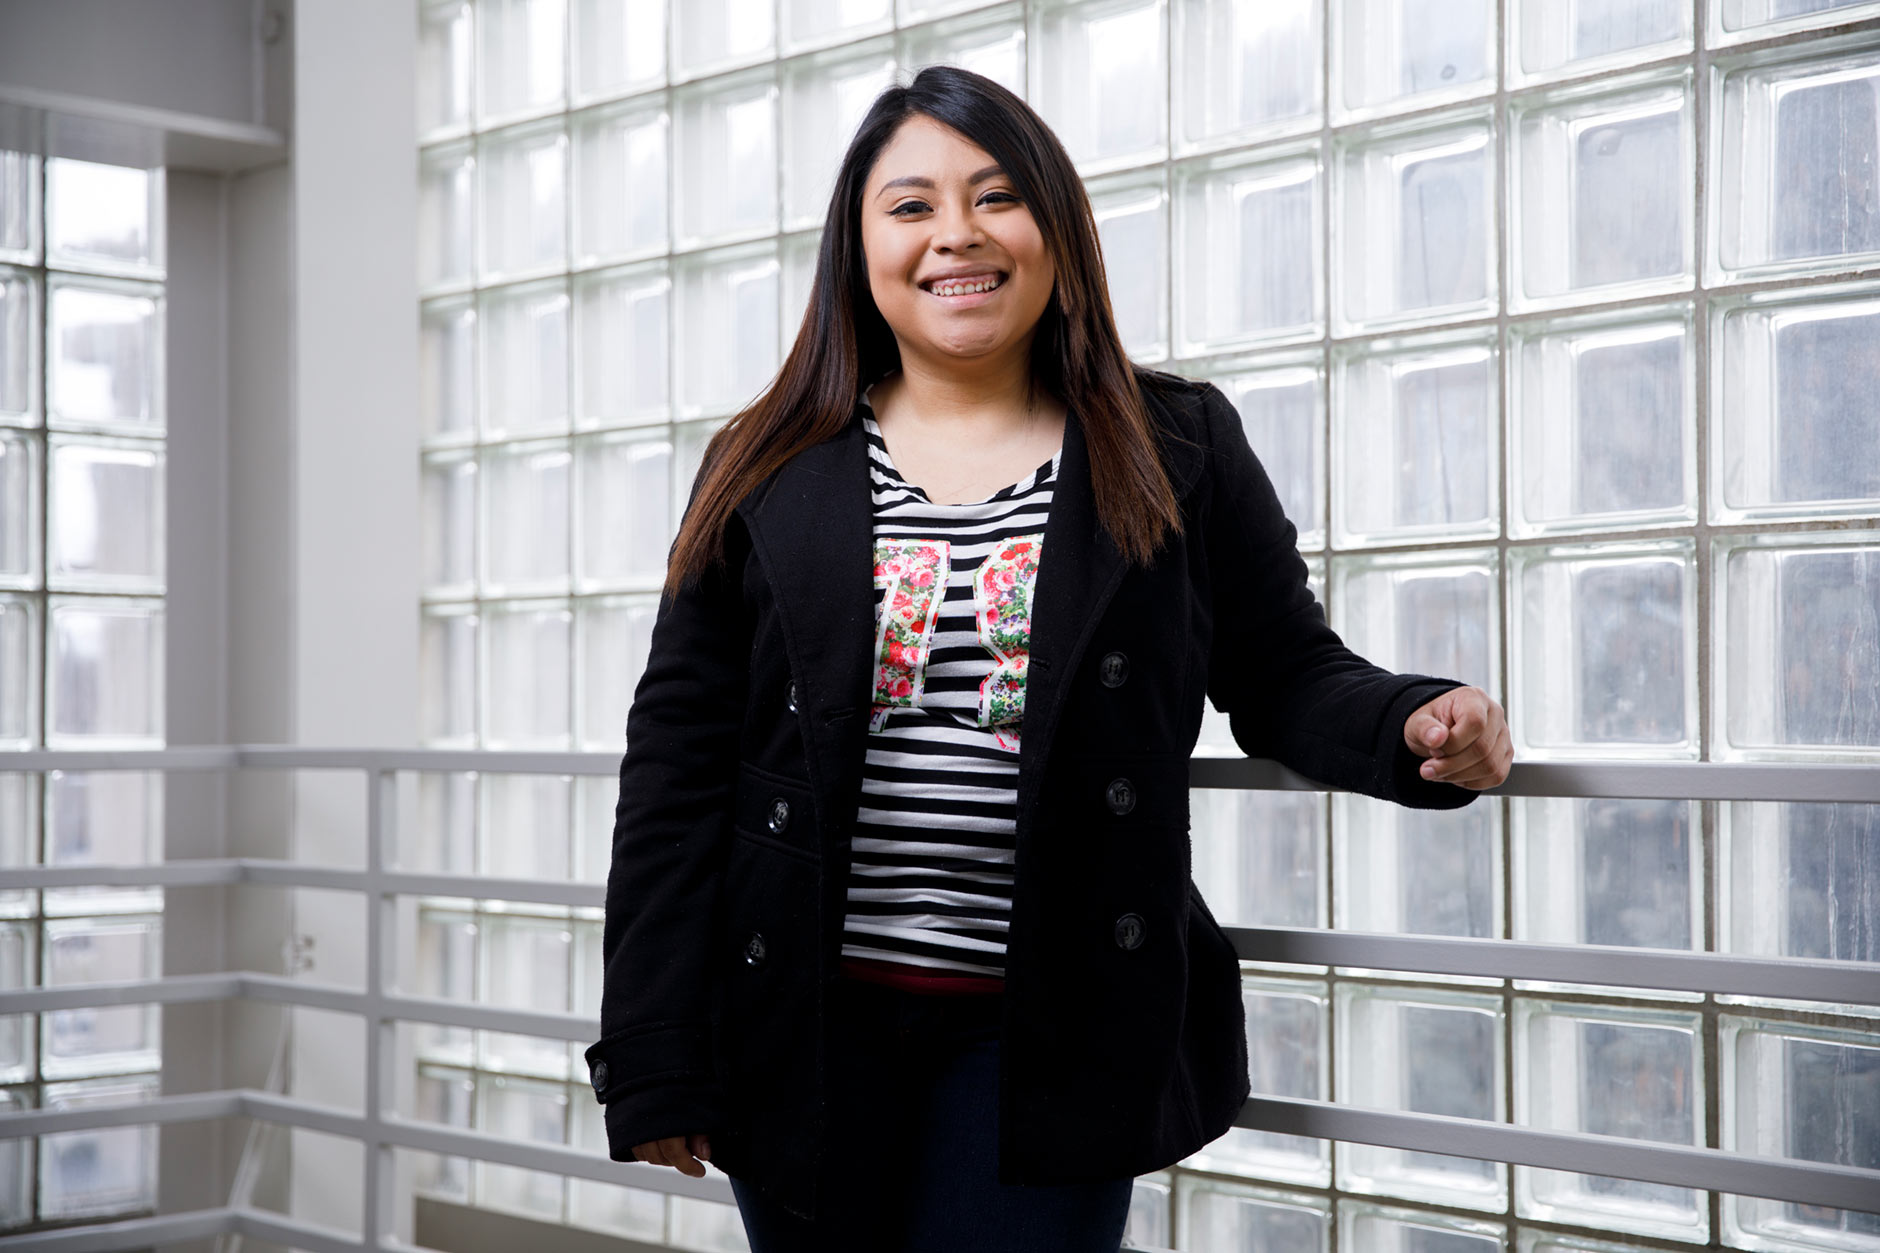 Gabriela Jaimes, a graduating senior at IU Northwest, poses for a portrait on campus in Gary on Tuesday, March 20, 2018. (James Brosher/IU Communications)